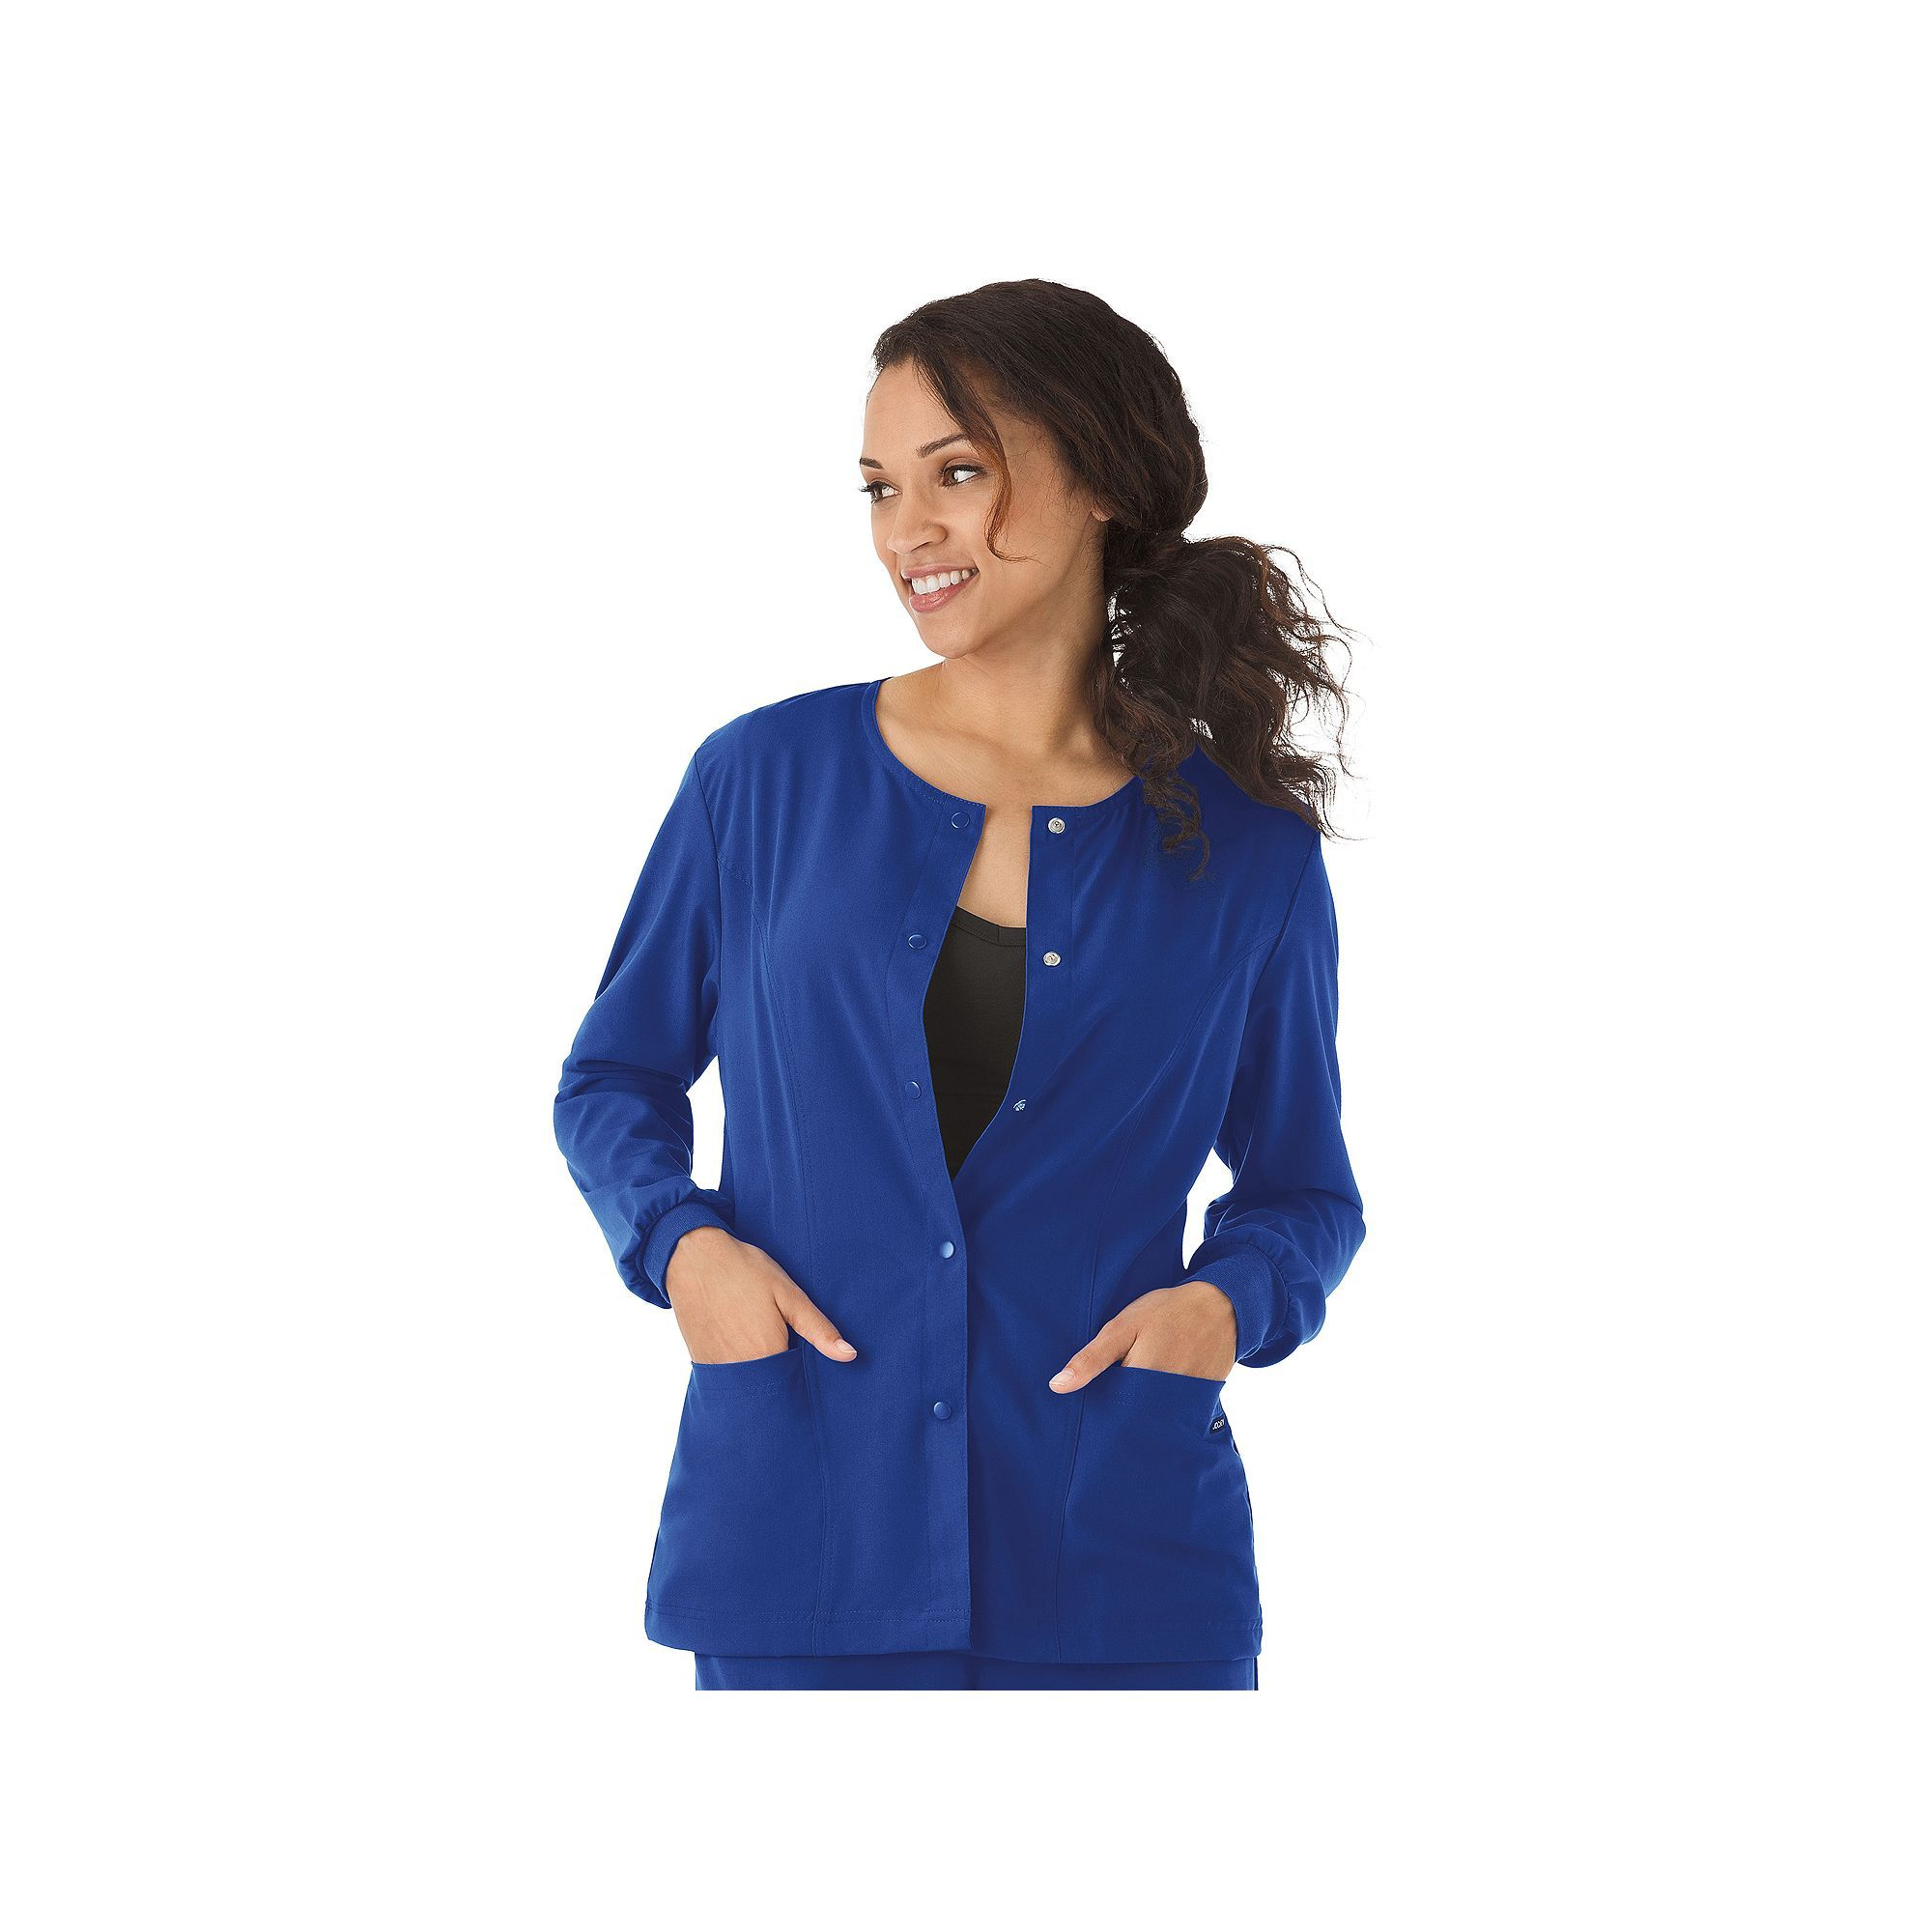 23287de0204 Jockey Plus Size Scrubs Classic Long Sleeve Jacket